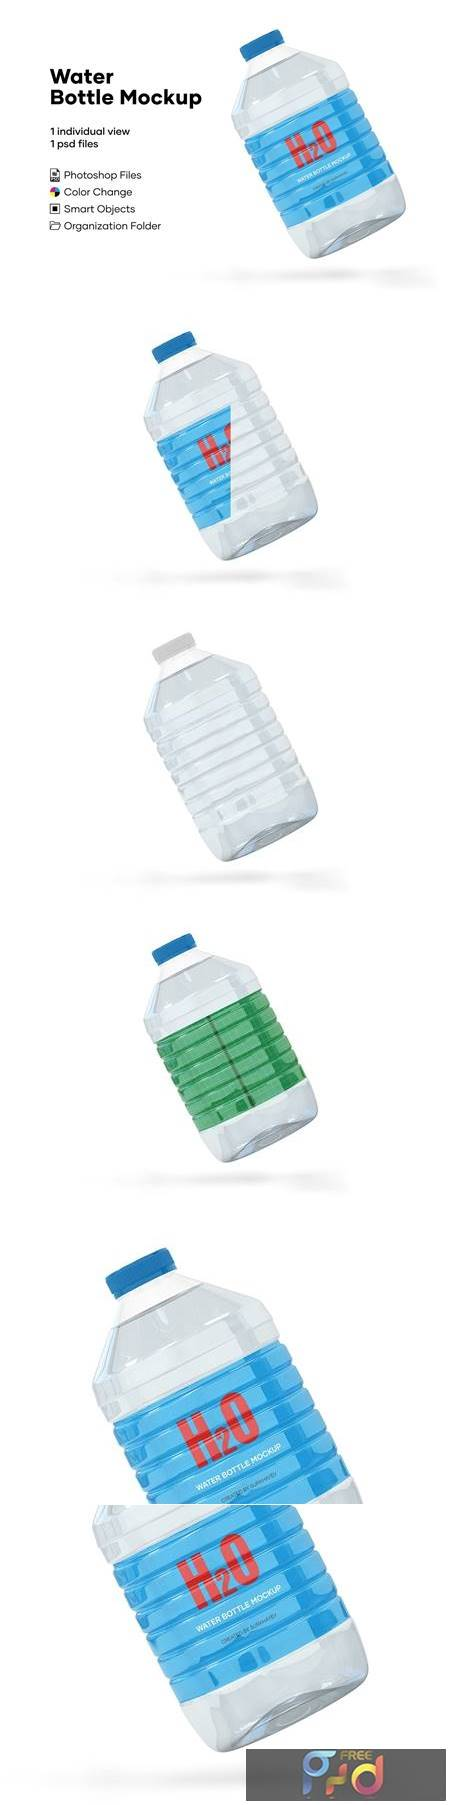 5L Clear PET Water Bottle Mockup 5233942 1